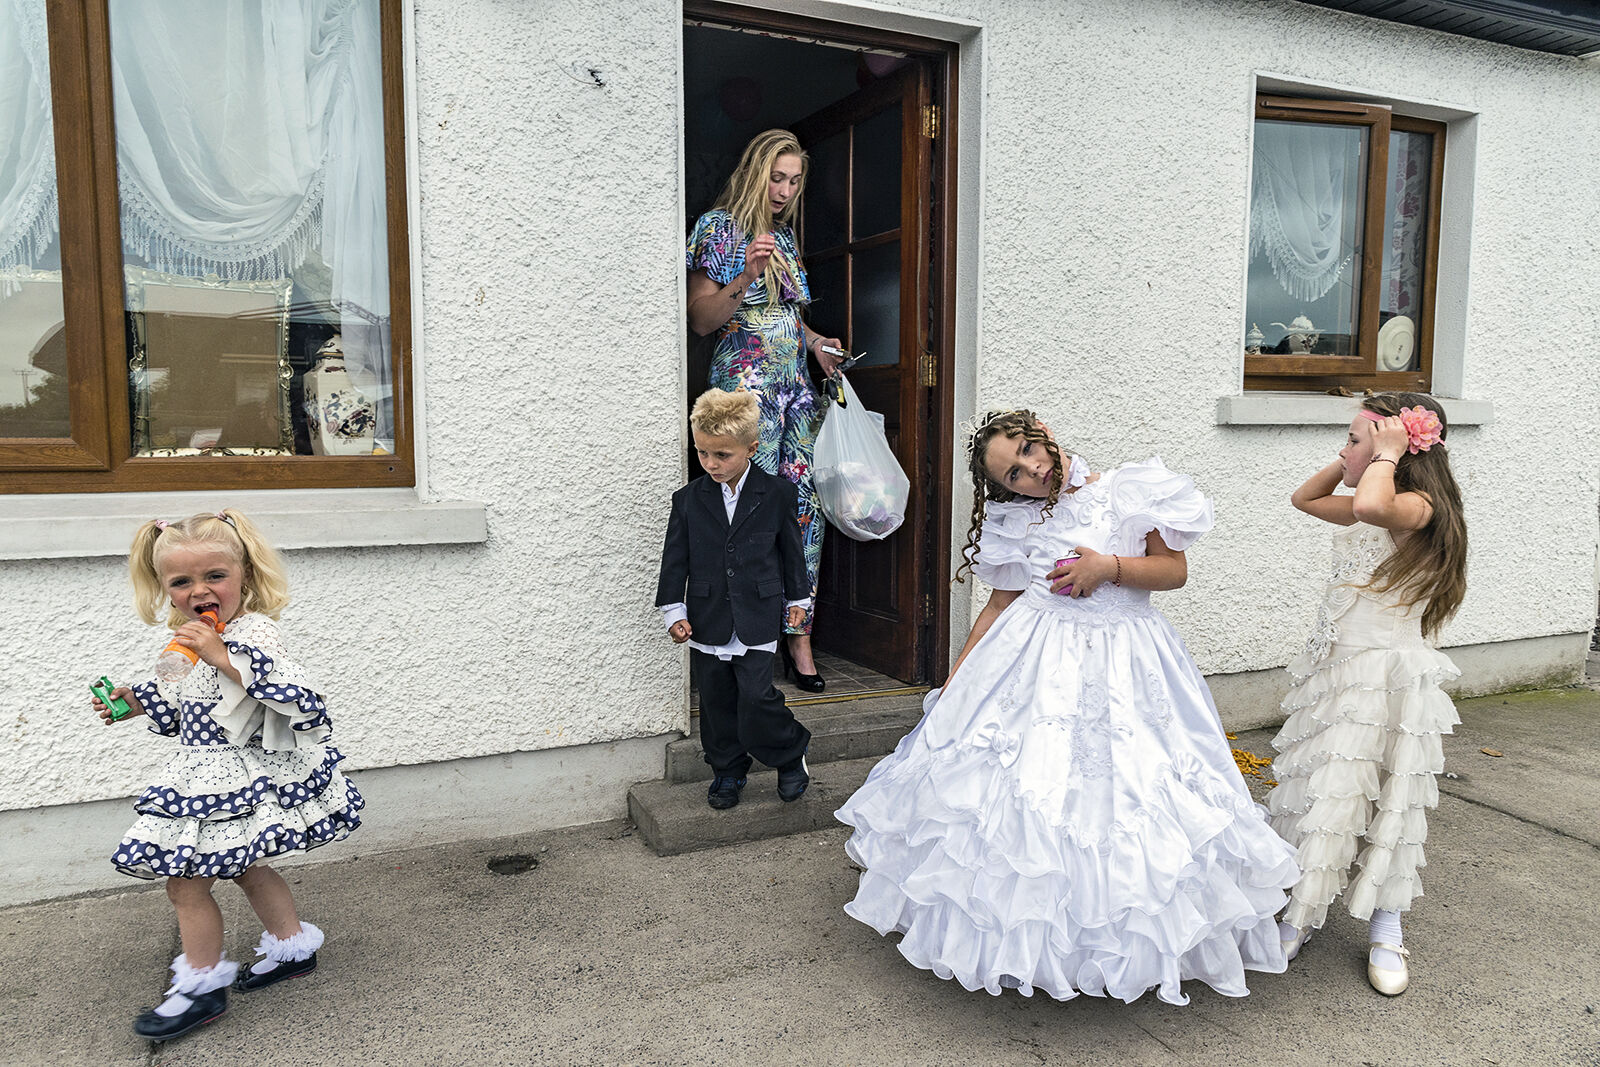 After Nita's Holy Communion Party, Tipperary, Ireland 2019